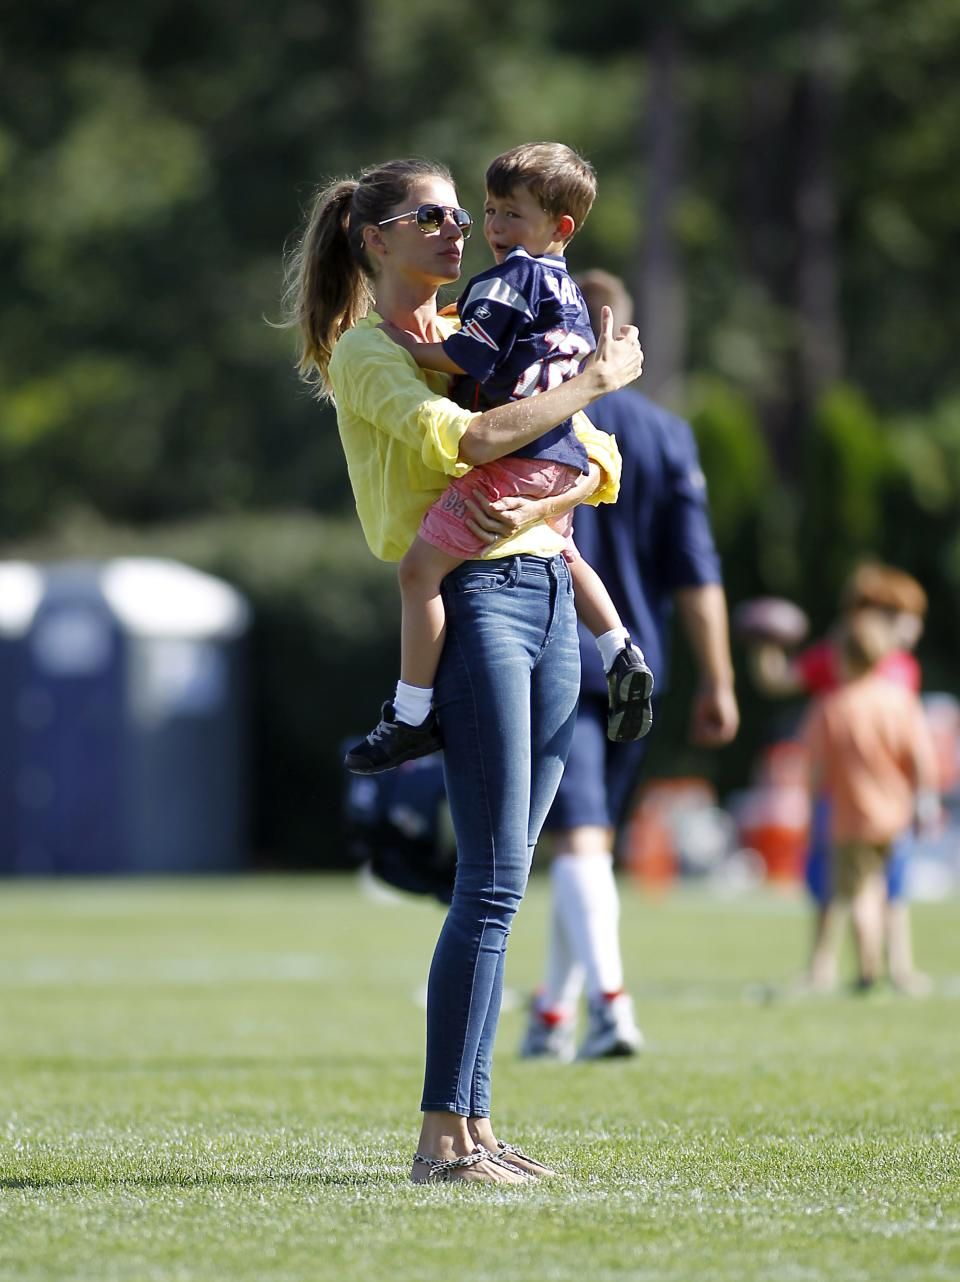 Gisele Bundchen comforts her son Benjamin after he was hurt playing football, following a joint workout with the Tampa Bay Buccaneers and the New England Patriots at NFL football training camp, in Foxborough, Mass., Thursday, Aug. 15, 2013. (AP Photo/Stew Milne)